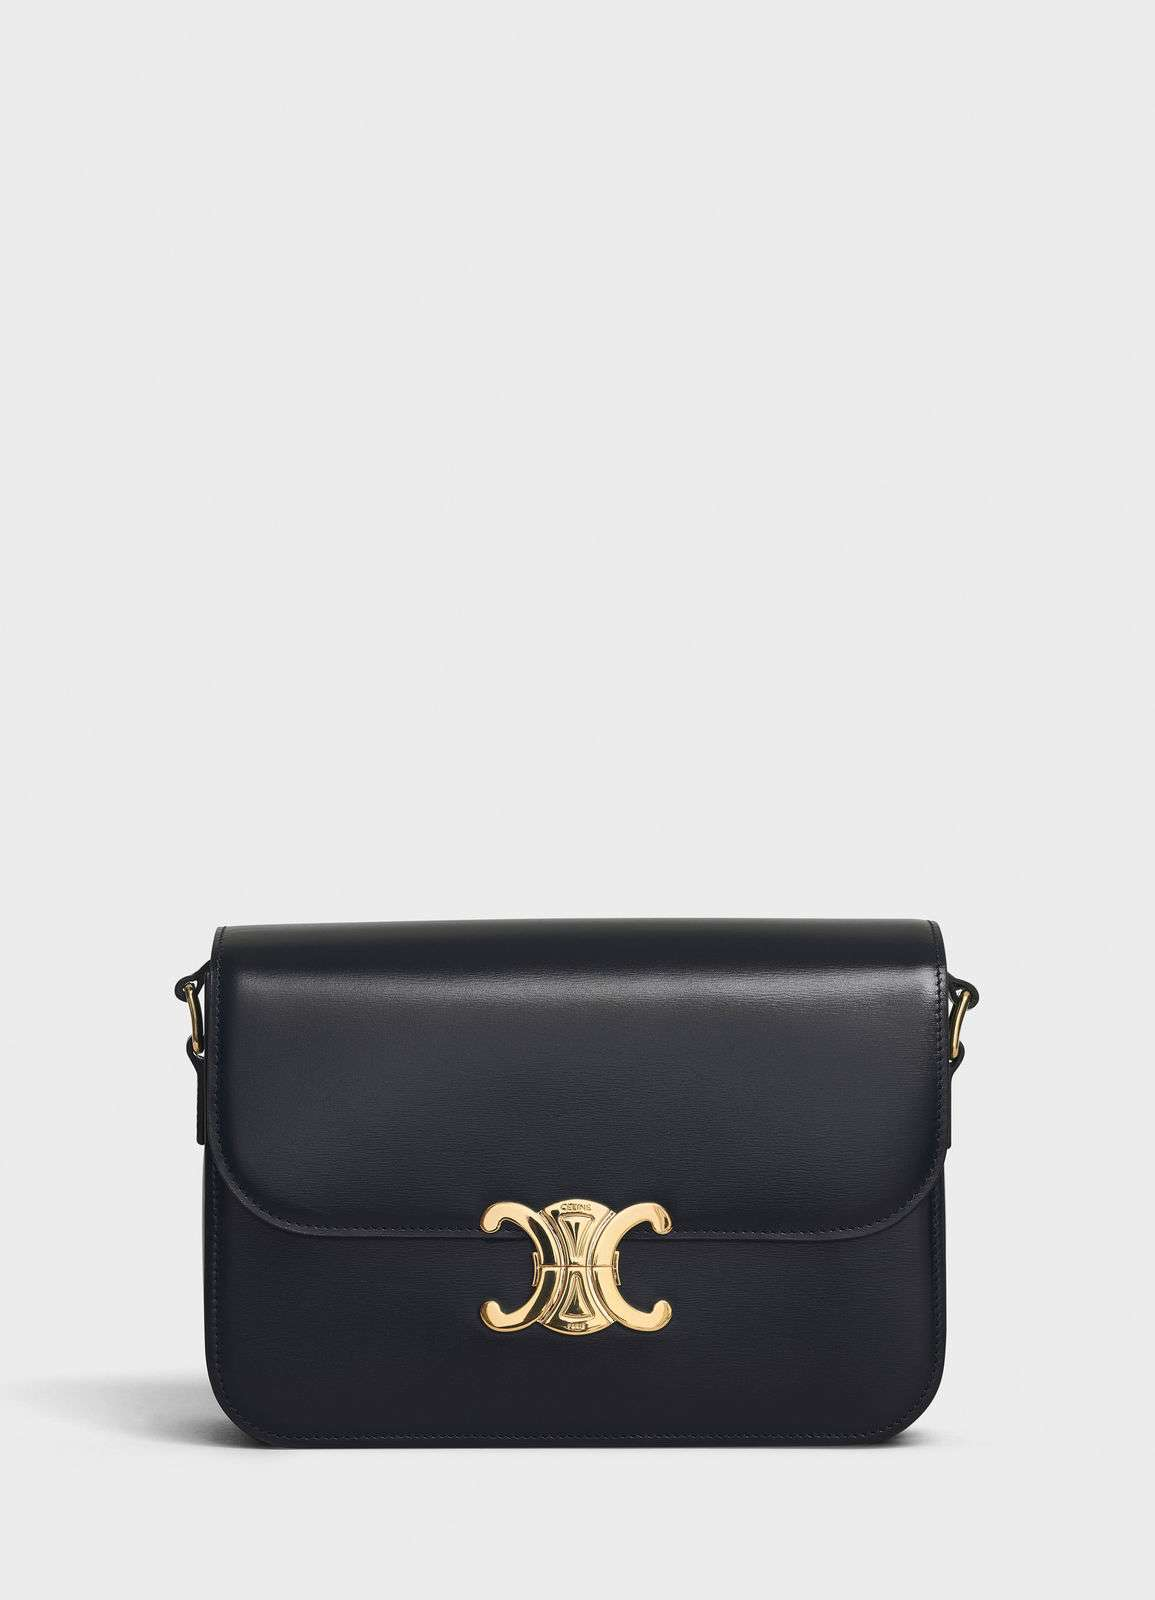 CELINE MEDIUM TRIOMPHE BAG IN SHINY CALFSKIN CL87363 BLACK